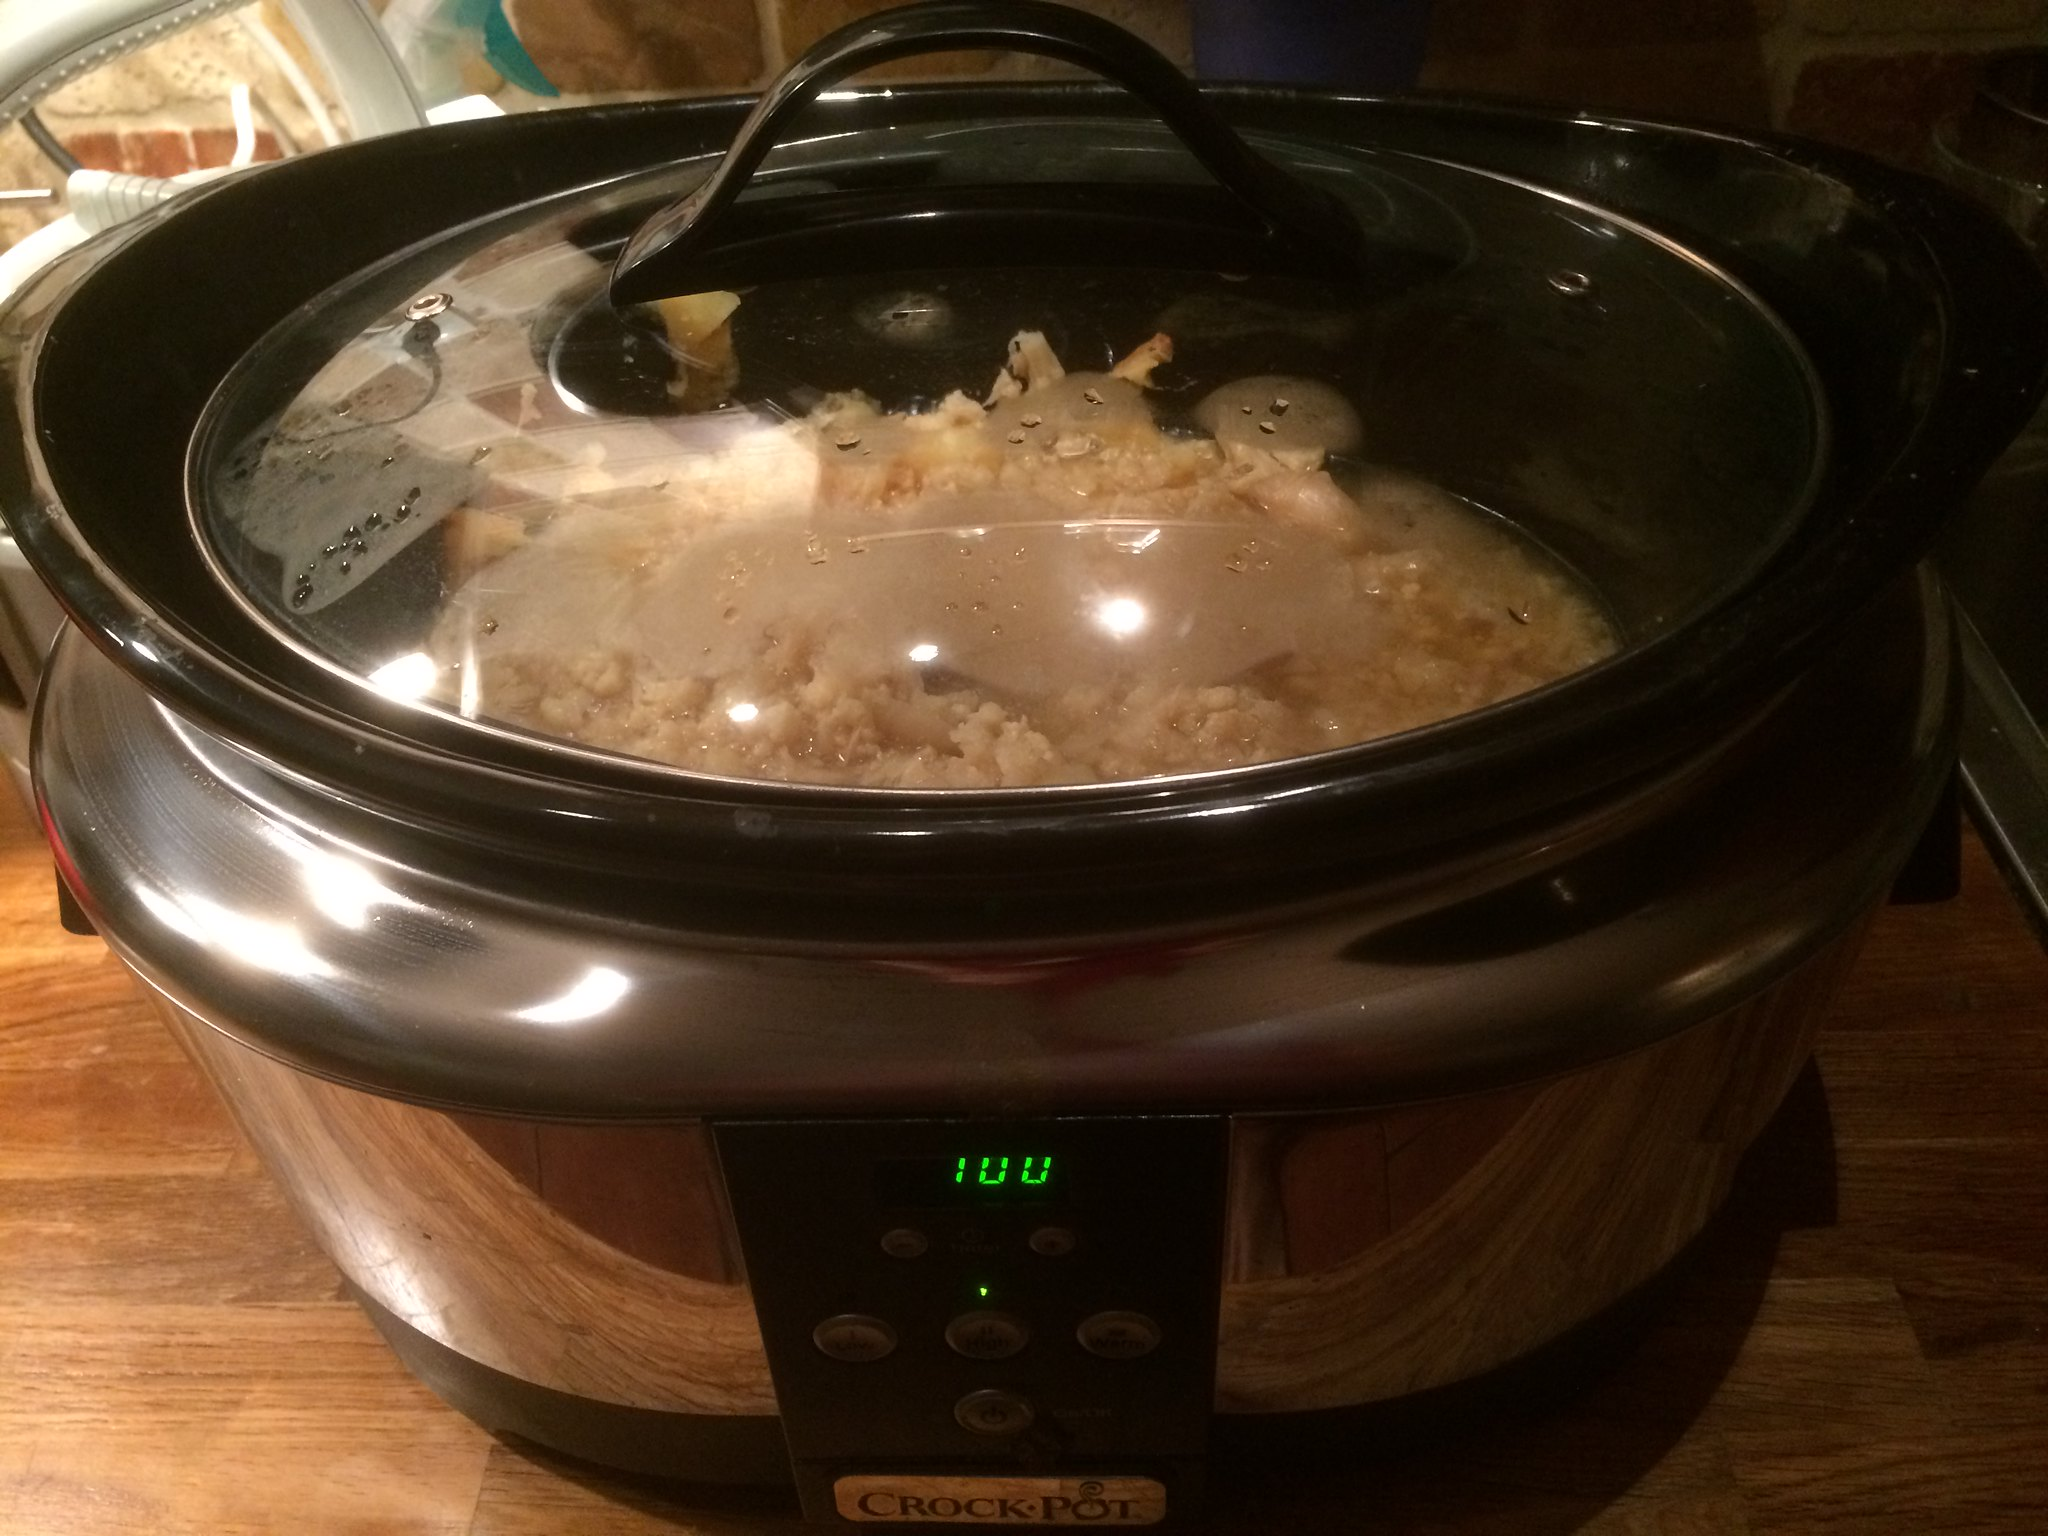 Soup in crock-pot